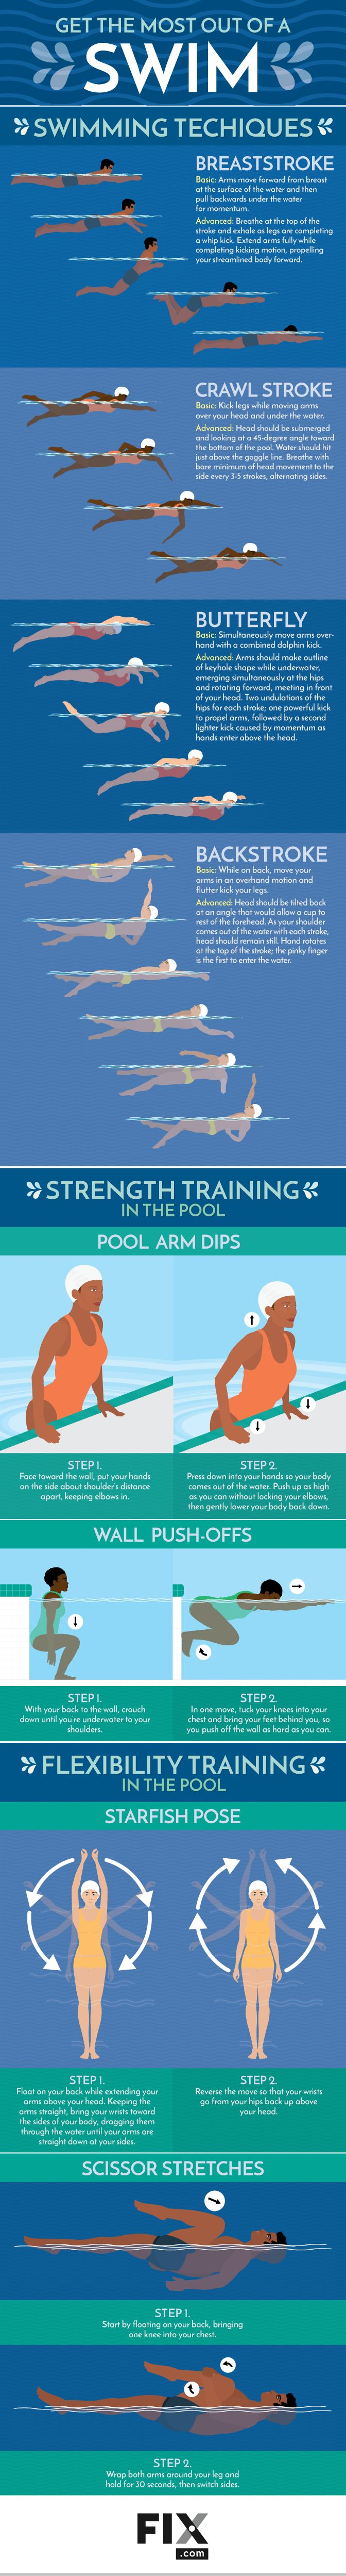 Get the Most Out of a Swim: Swimming Techniques   https://www.fix.com/blog/benefits-of-water-workouts/